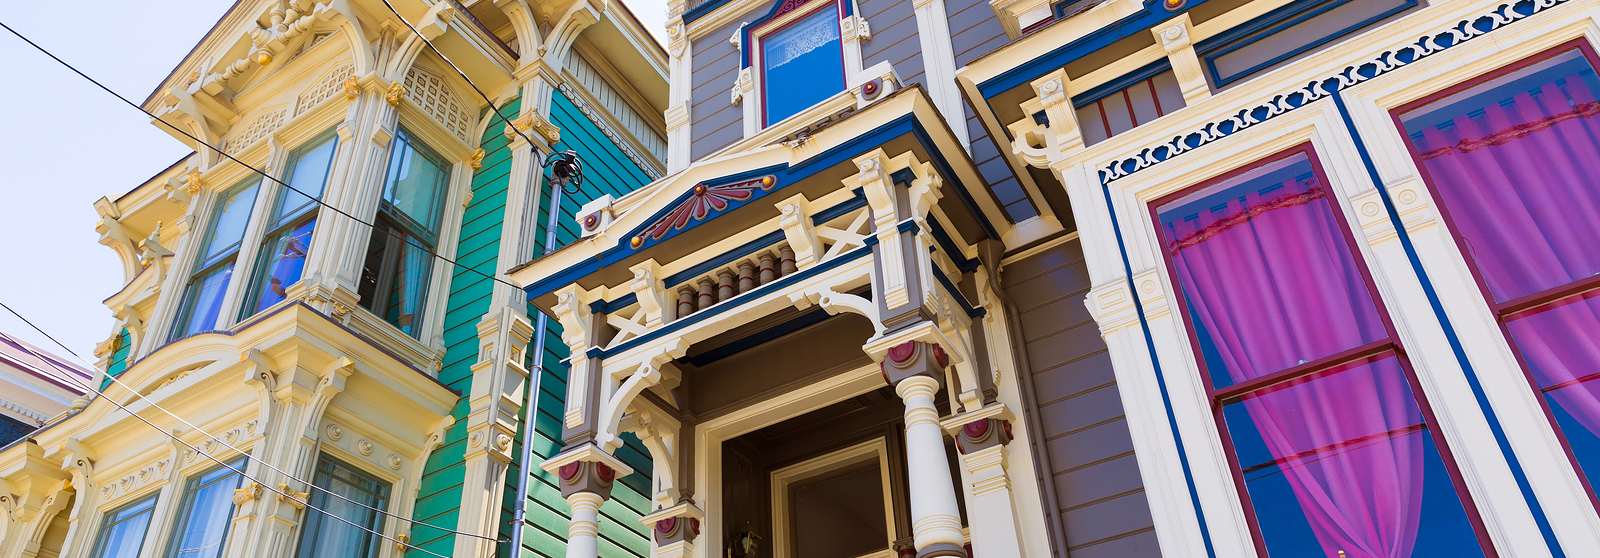 San Francisco Victorian houses in Pacific Heights of California